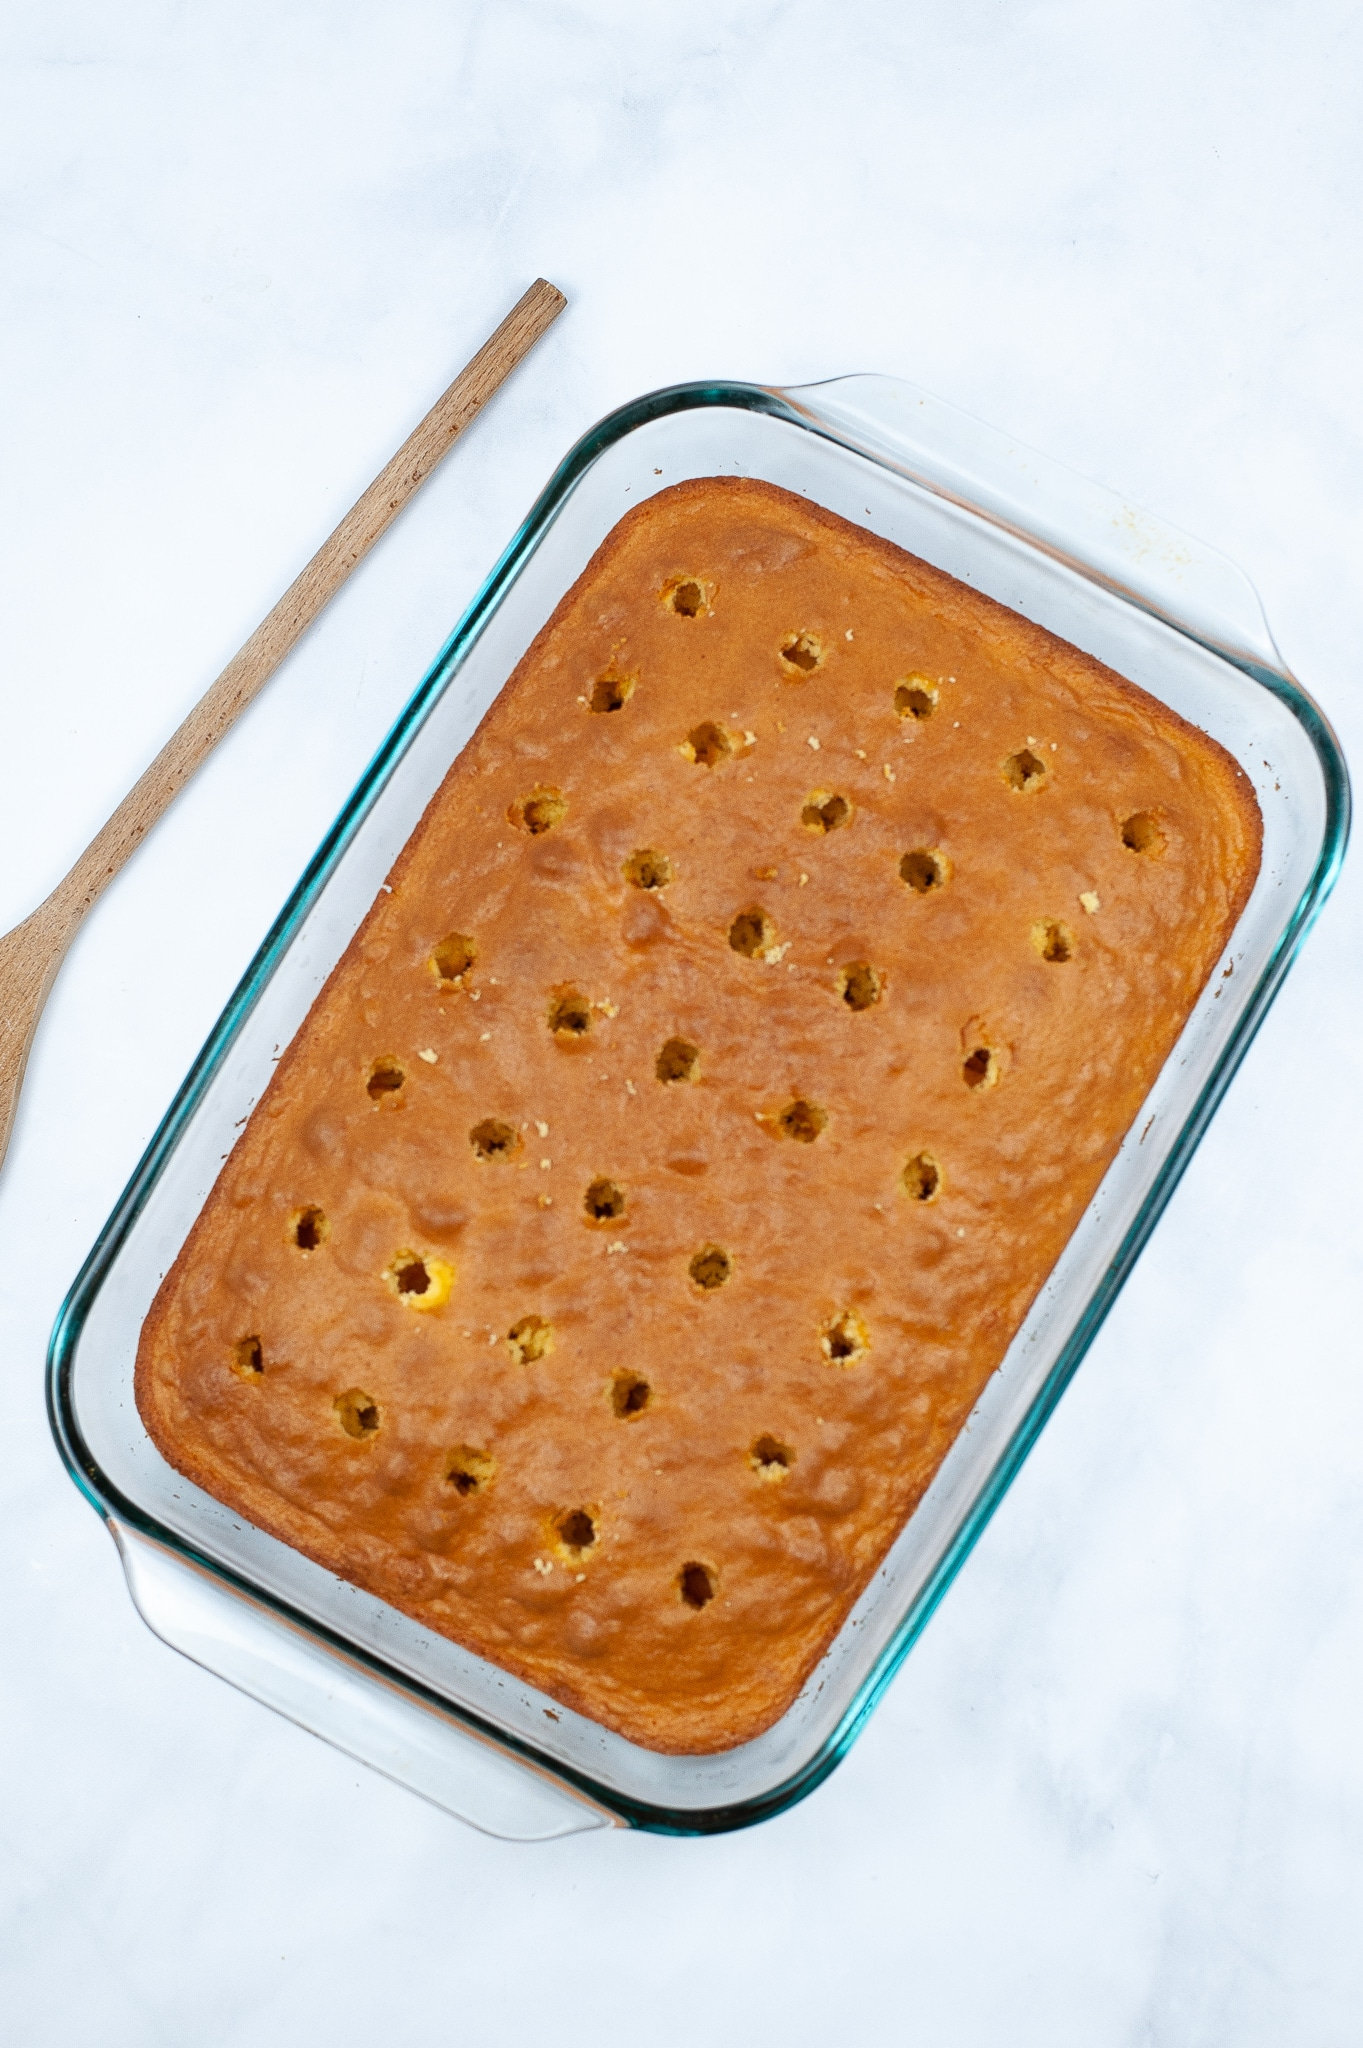 banana cake with holes poked in it